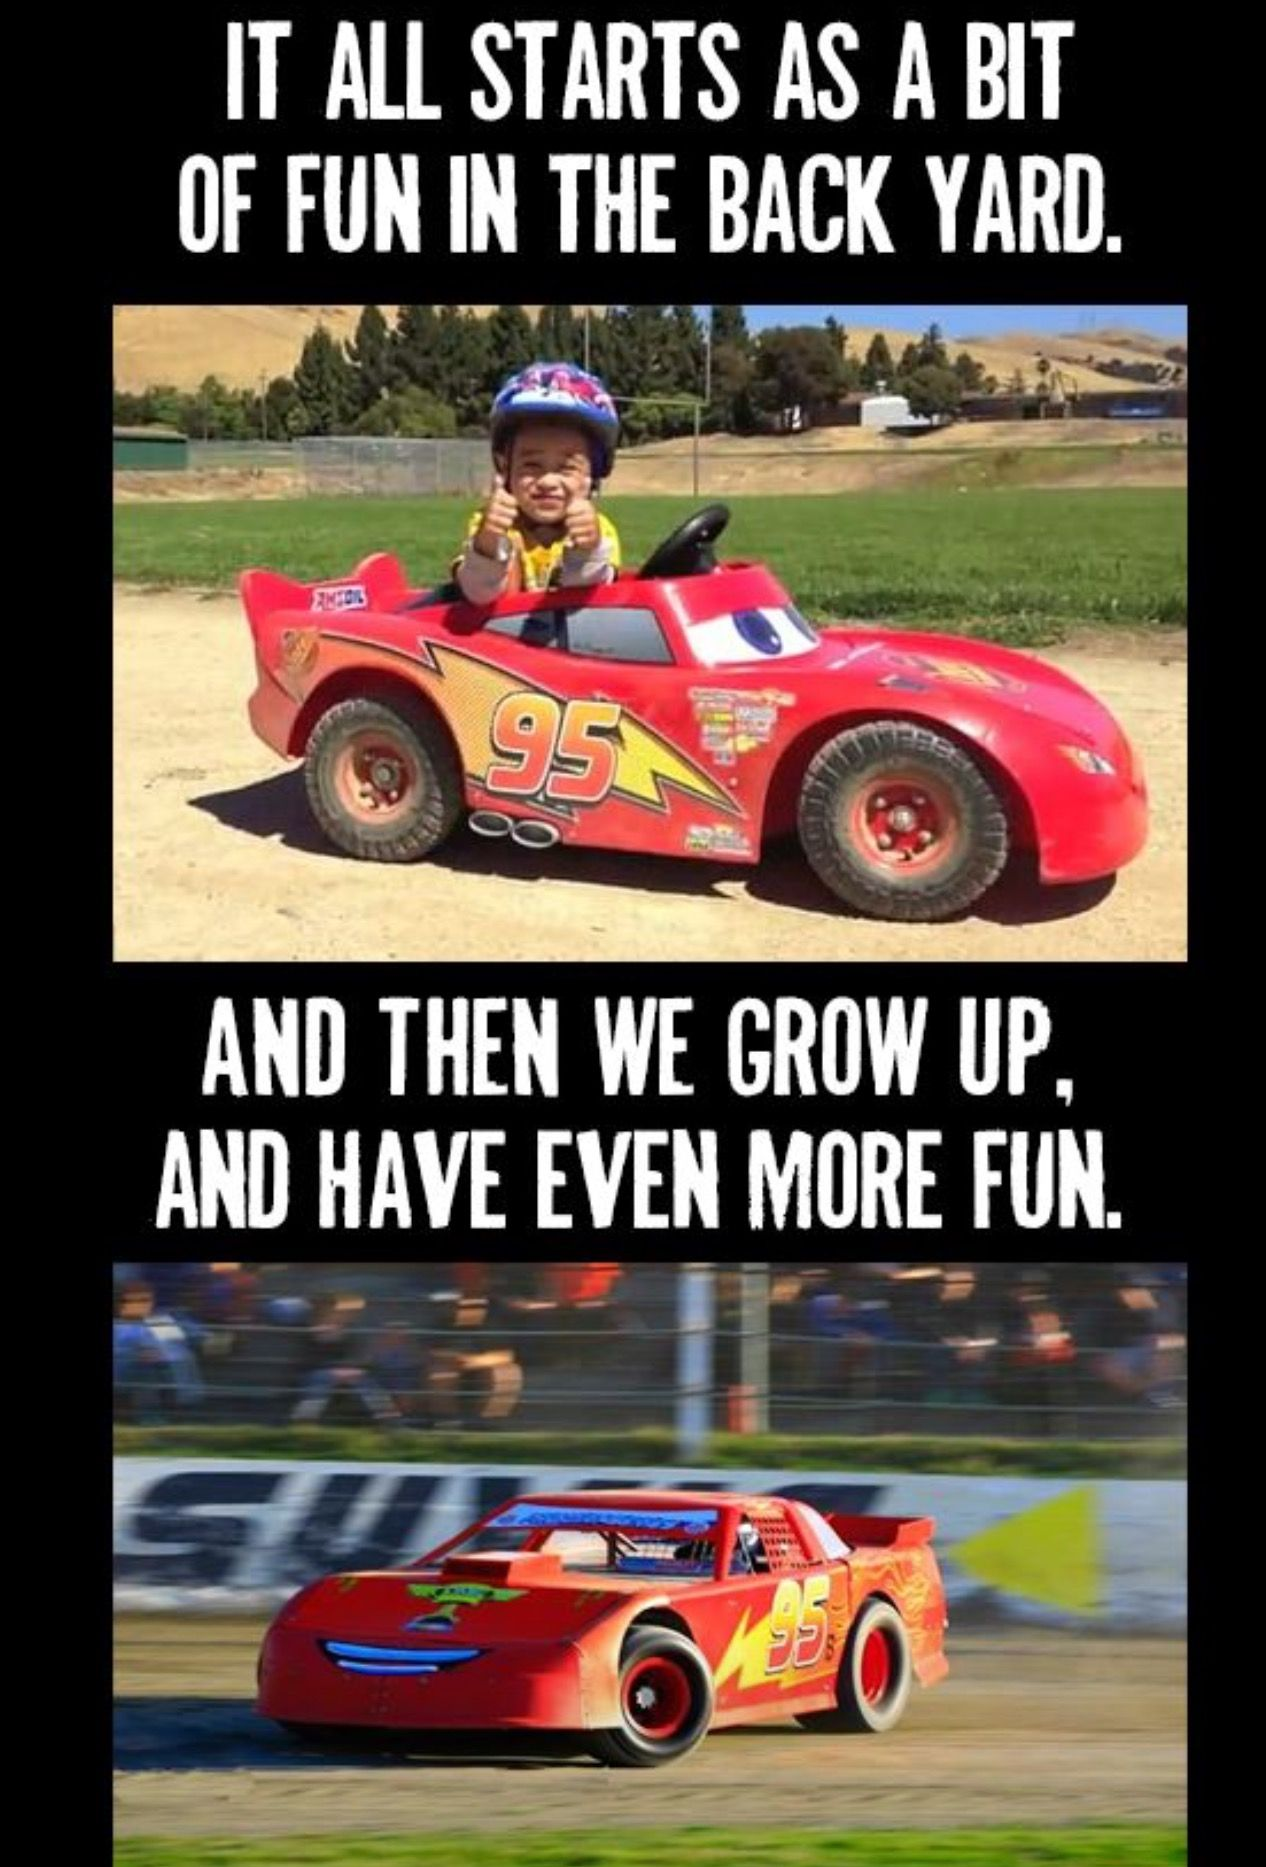 Pin By Cindy Engel On Dirt Track Life Dirt Track Racing Dirt Racing Racing Quotes